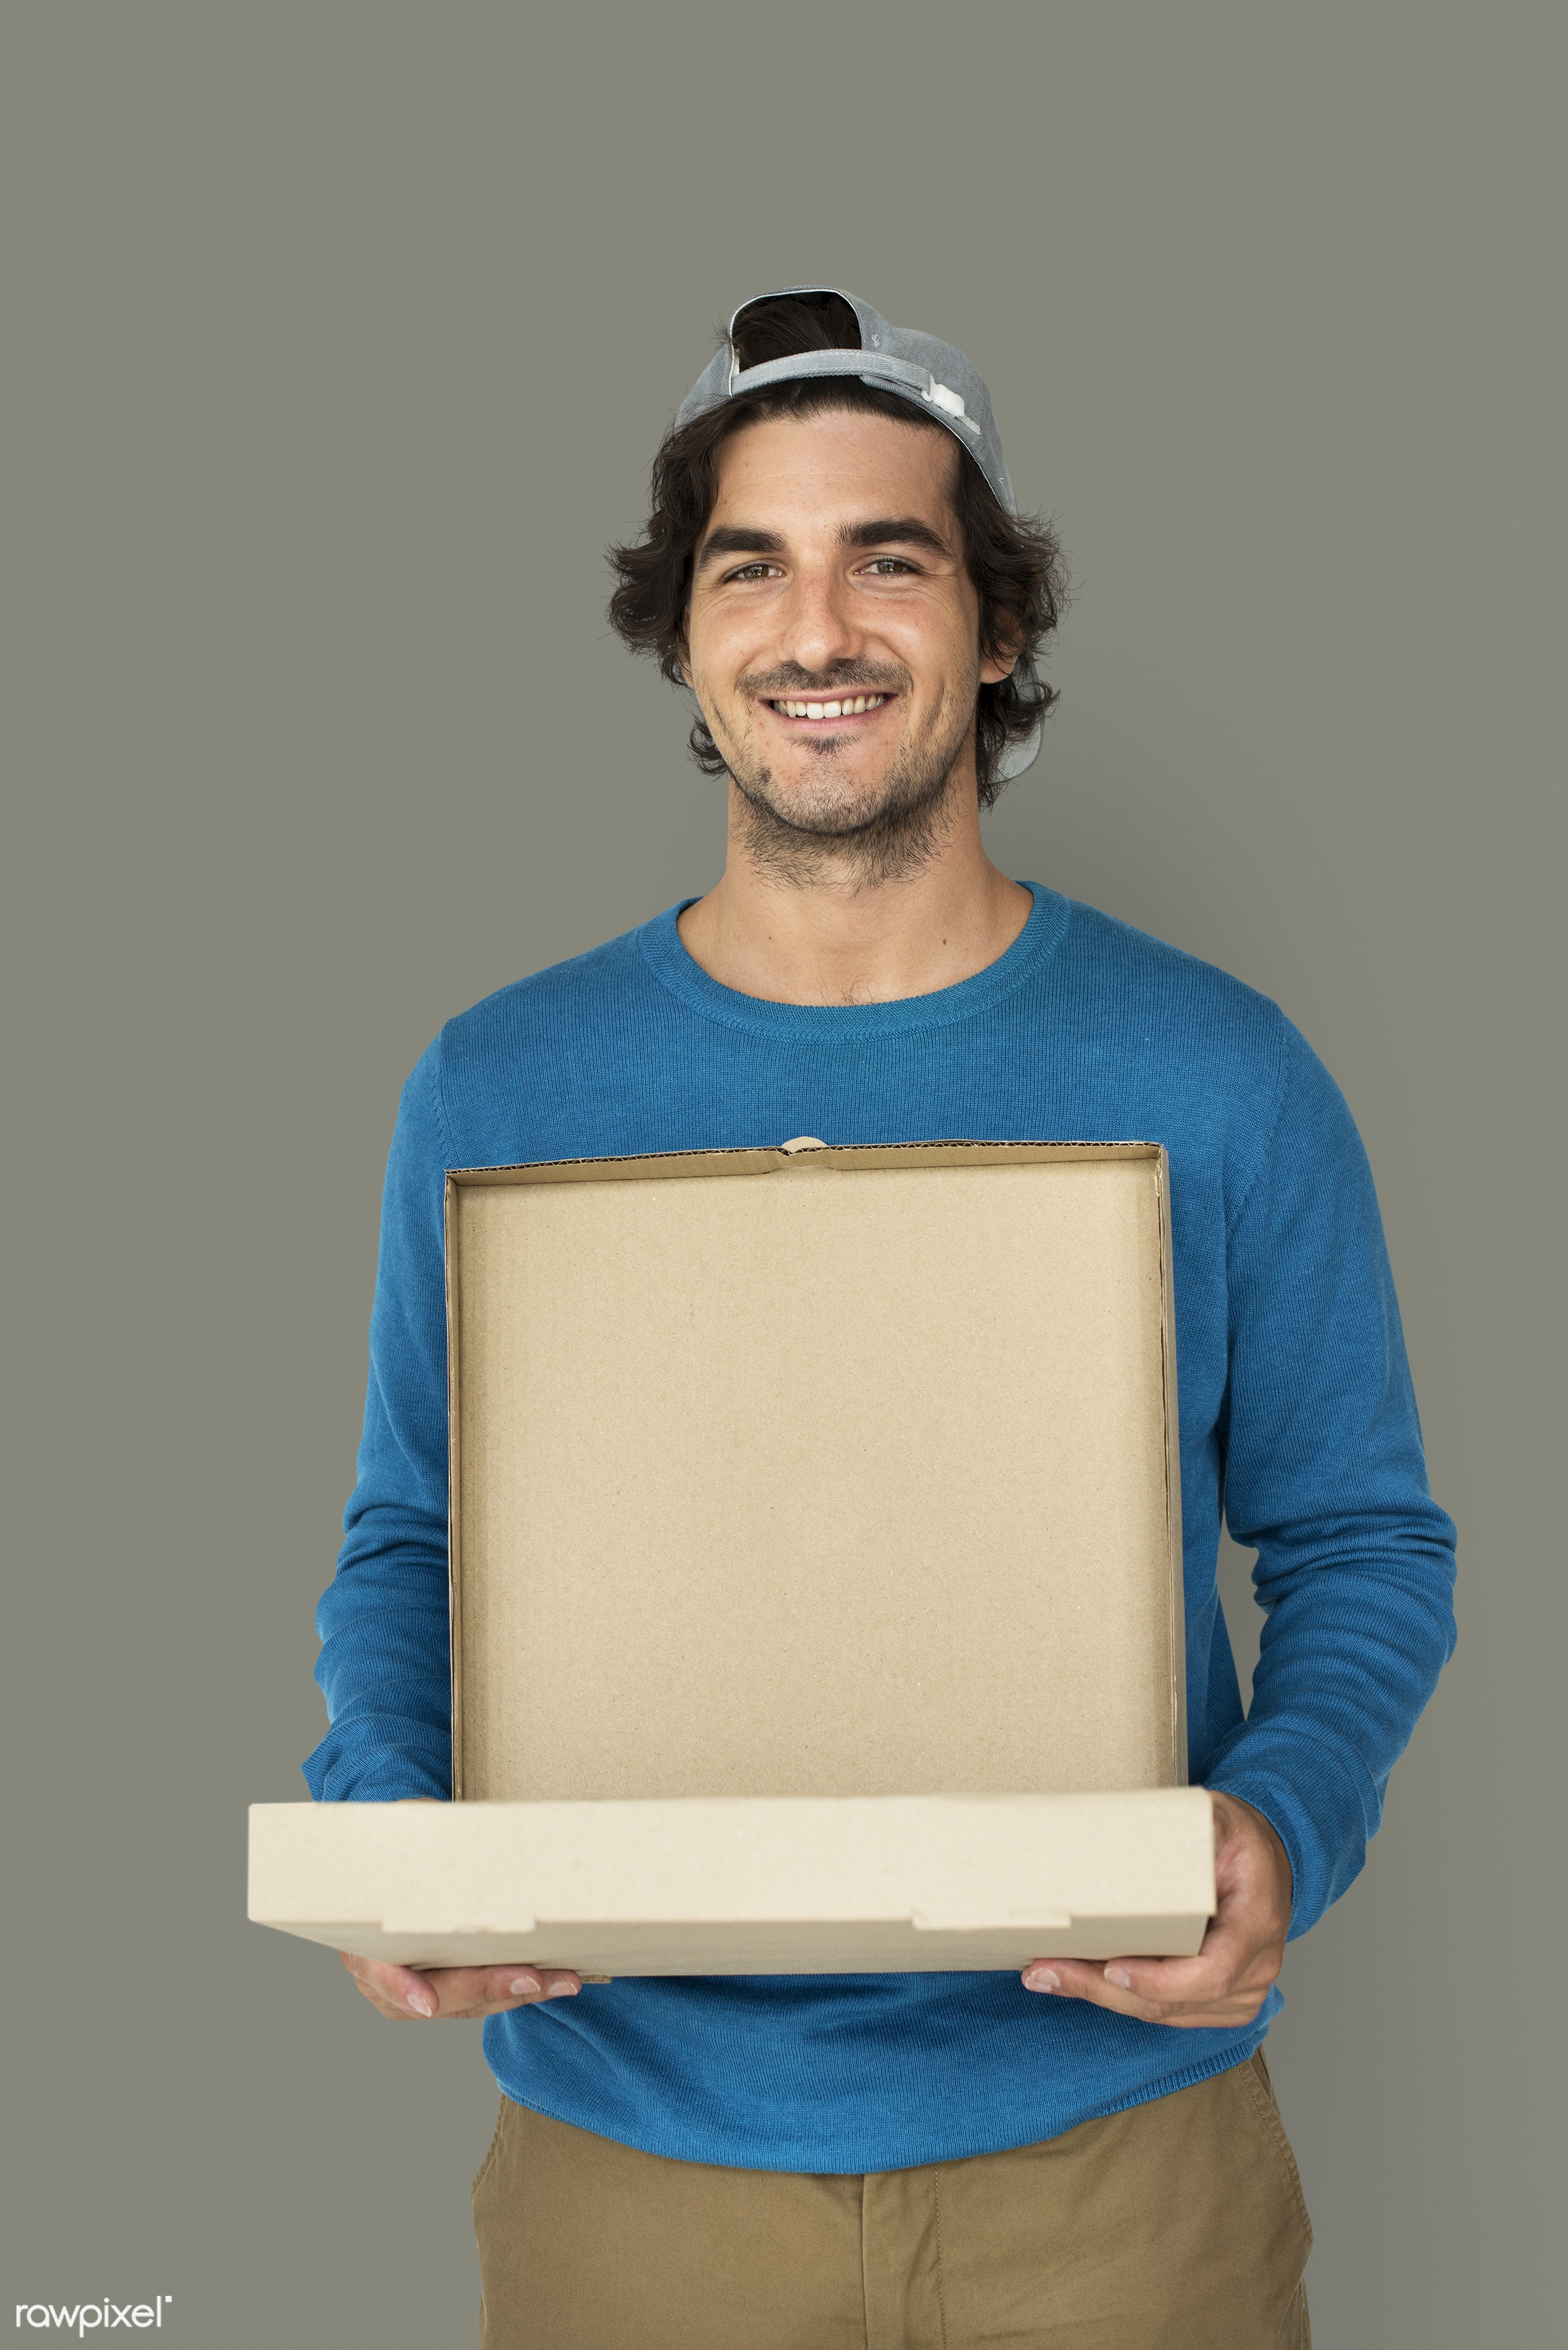 studio, expression, person, holding, food delivery, package, people, solo, ordering, smile, cheerful, smiling, pizza boy,...